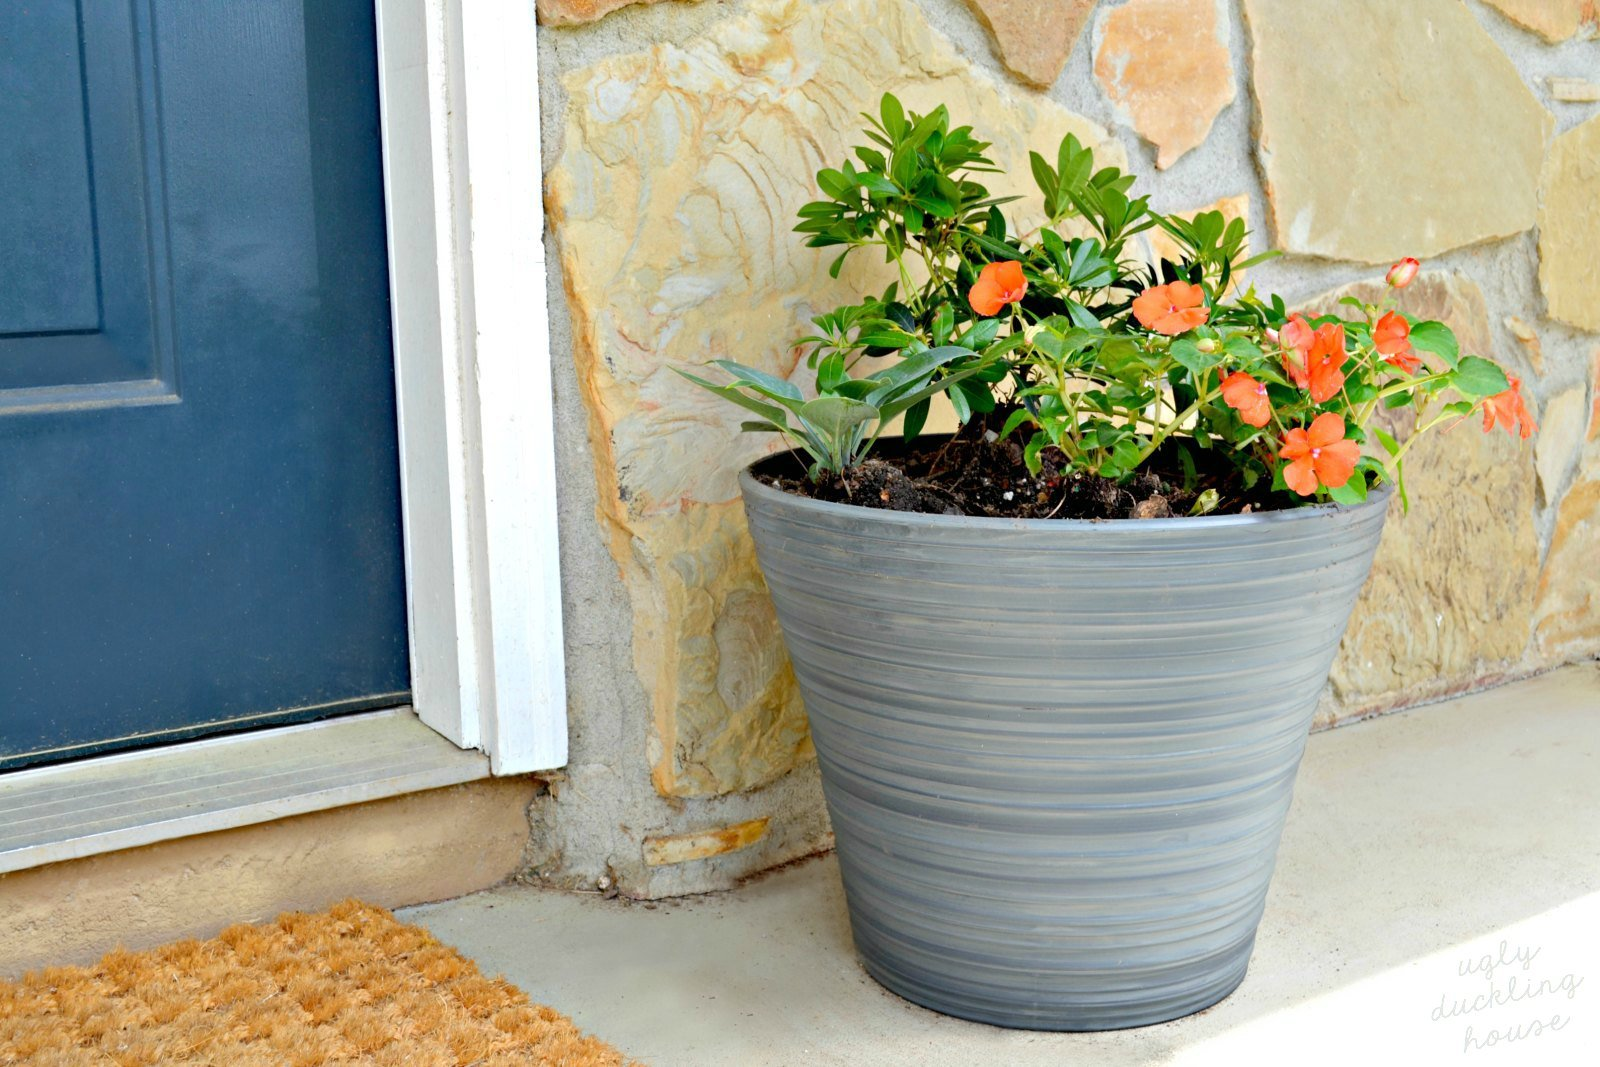 diy tricks for covered porch planters - ugly duckling house